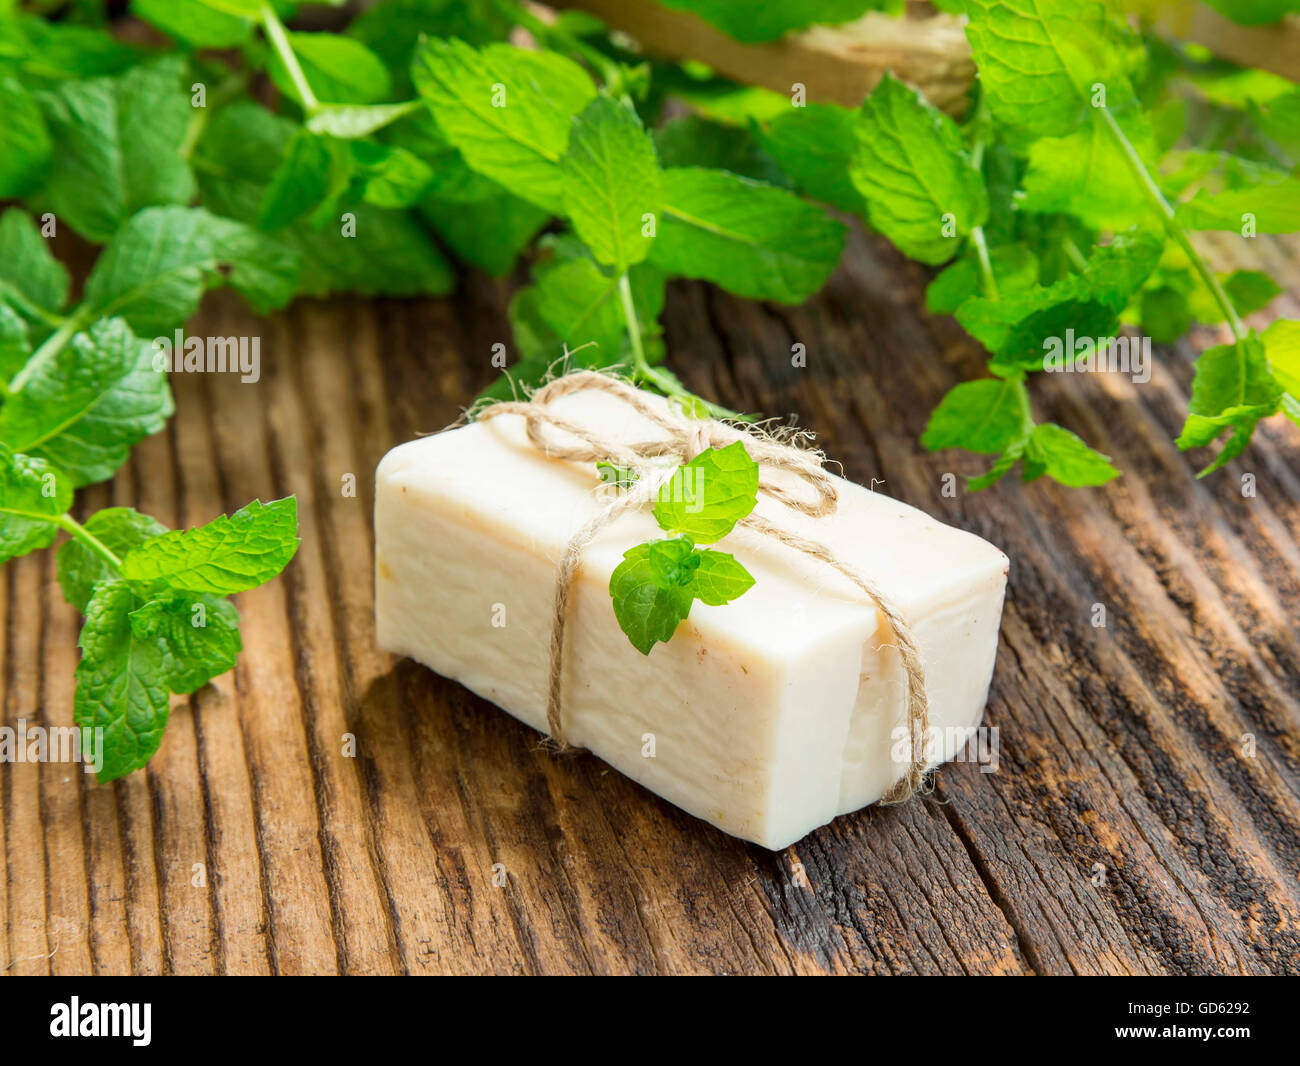 Natural handmade soap with mint leaves plant - Stock Image